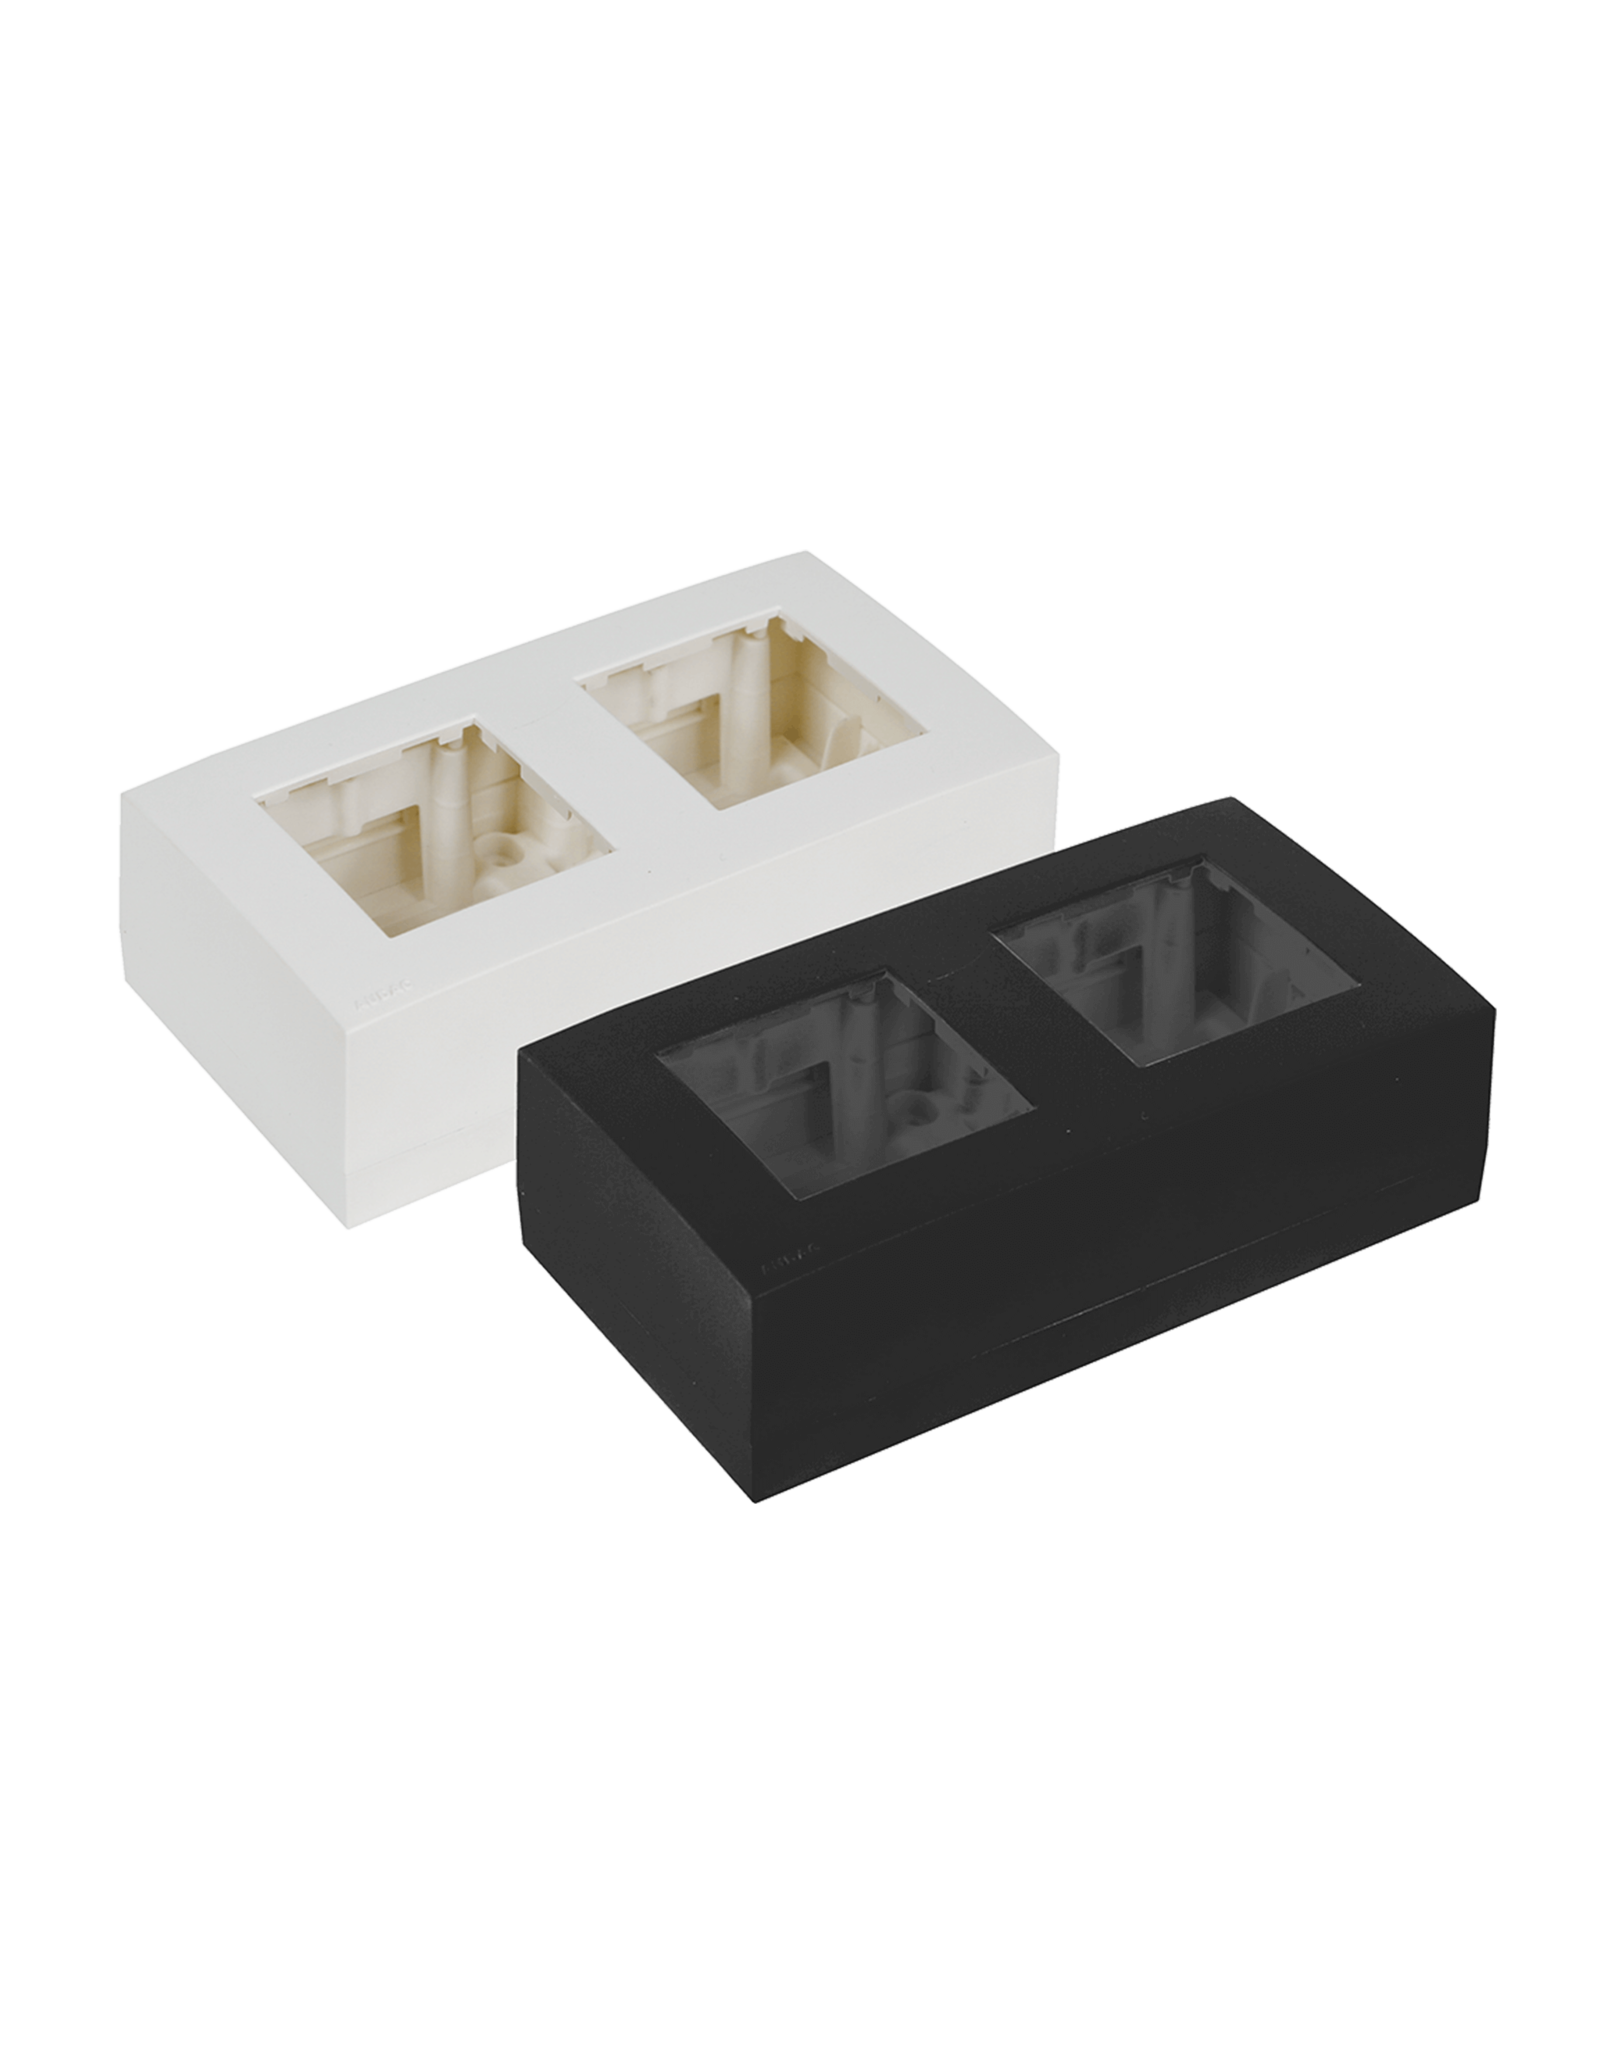 Audac Surface mount box double 45 x 45 mm White version